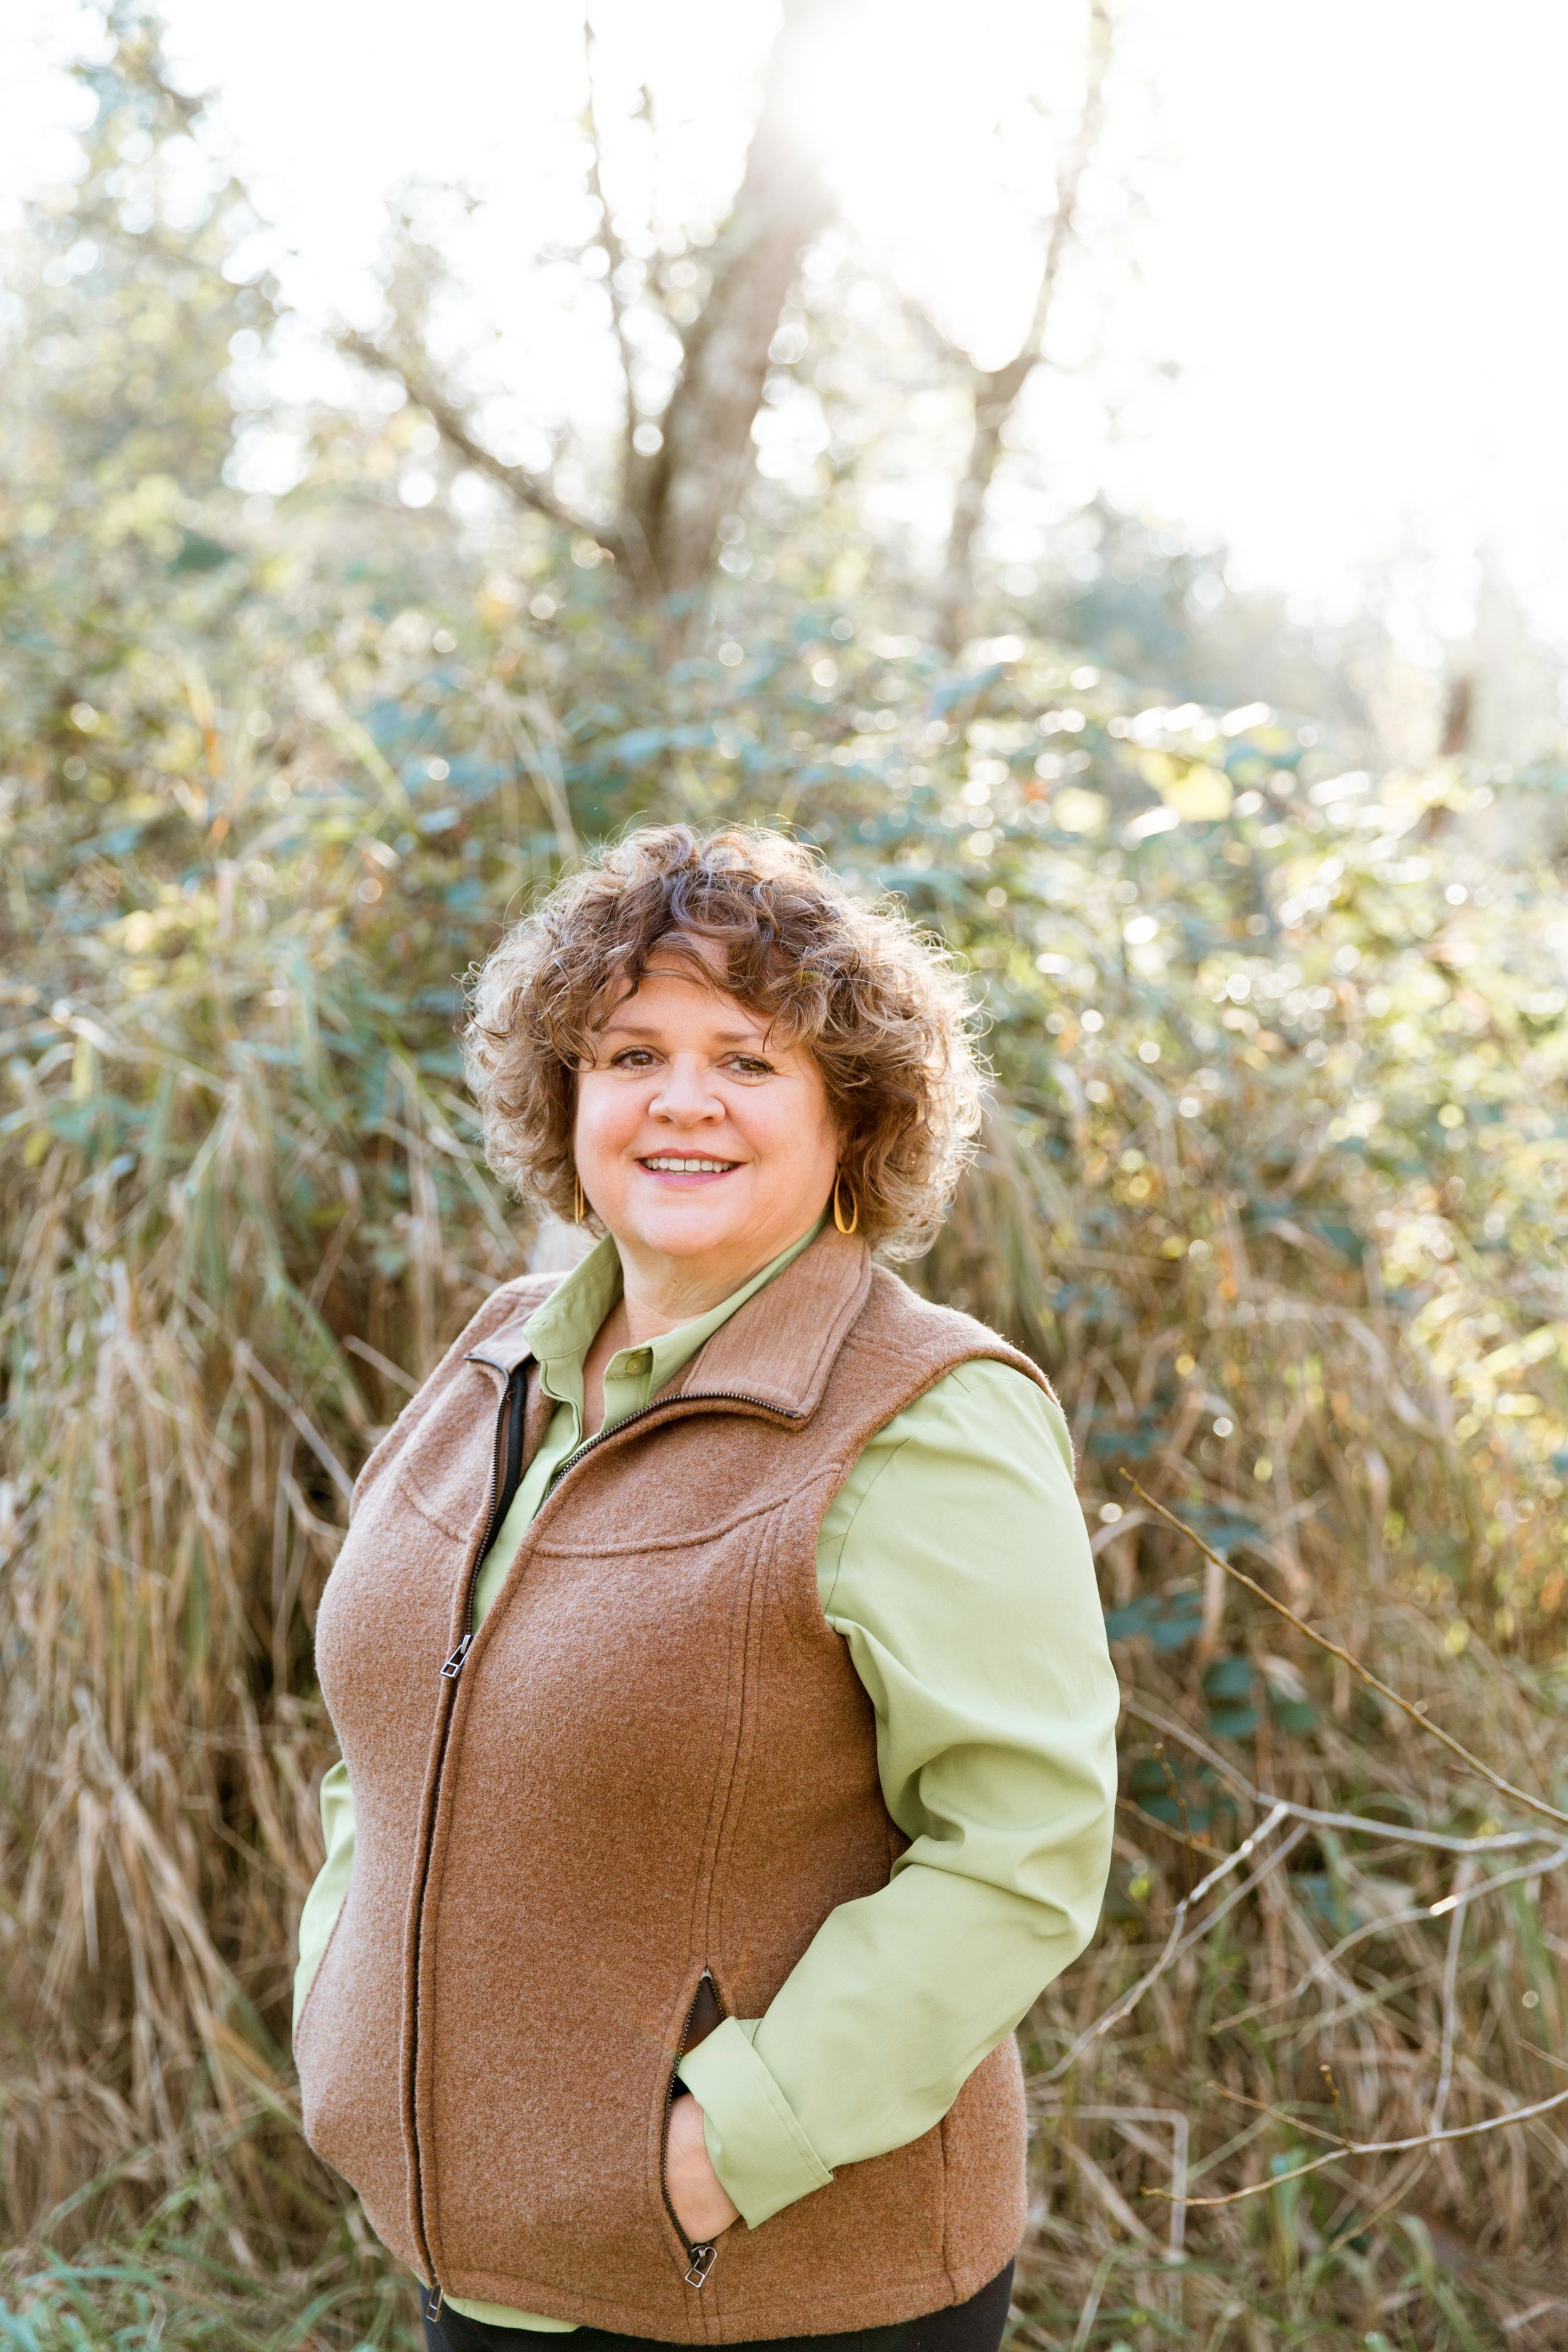 Brenda - Butterfly - Lead Instructor - The Lead Instructor, Brenda Running, is a certified Forest School Teacher, a Native Plant Steward with the Washington Native Plant Society and a Master Naturalist. She's also been trained in Outdoor Leadership with Washington Trails Association and the Art of Mentoring Children in Nature at Wilderness Awareness School. She has 13 years of experience working with children in outdoor educational settings . She is Wilderness First Aid certified, in addition to Adults and Pediatric First Aid/CPR/AED for Adults & Pediatric.Brenda is a member of the National Association for the Education of Young Children. Her background includes literacy intervention, working with children with special needs as well as a Family Advocate.